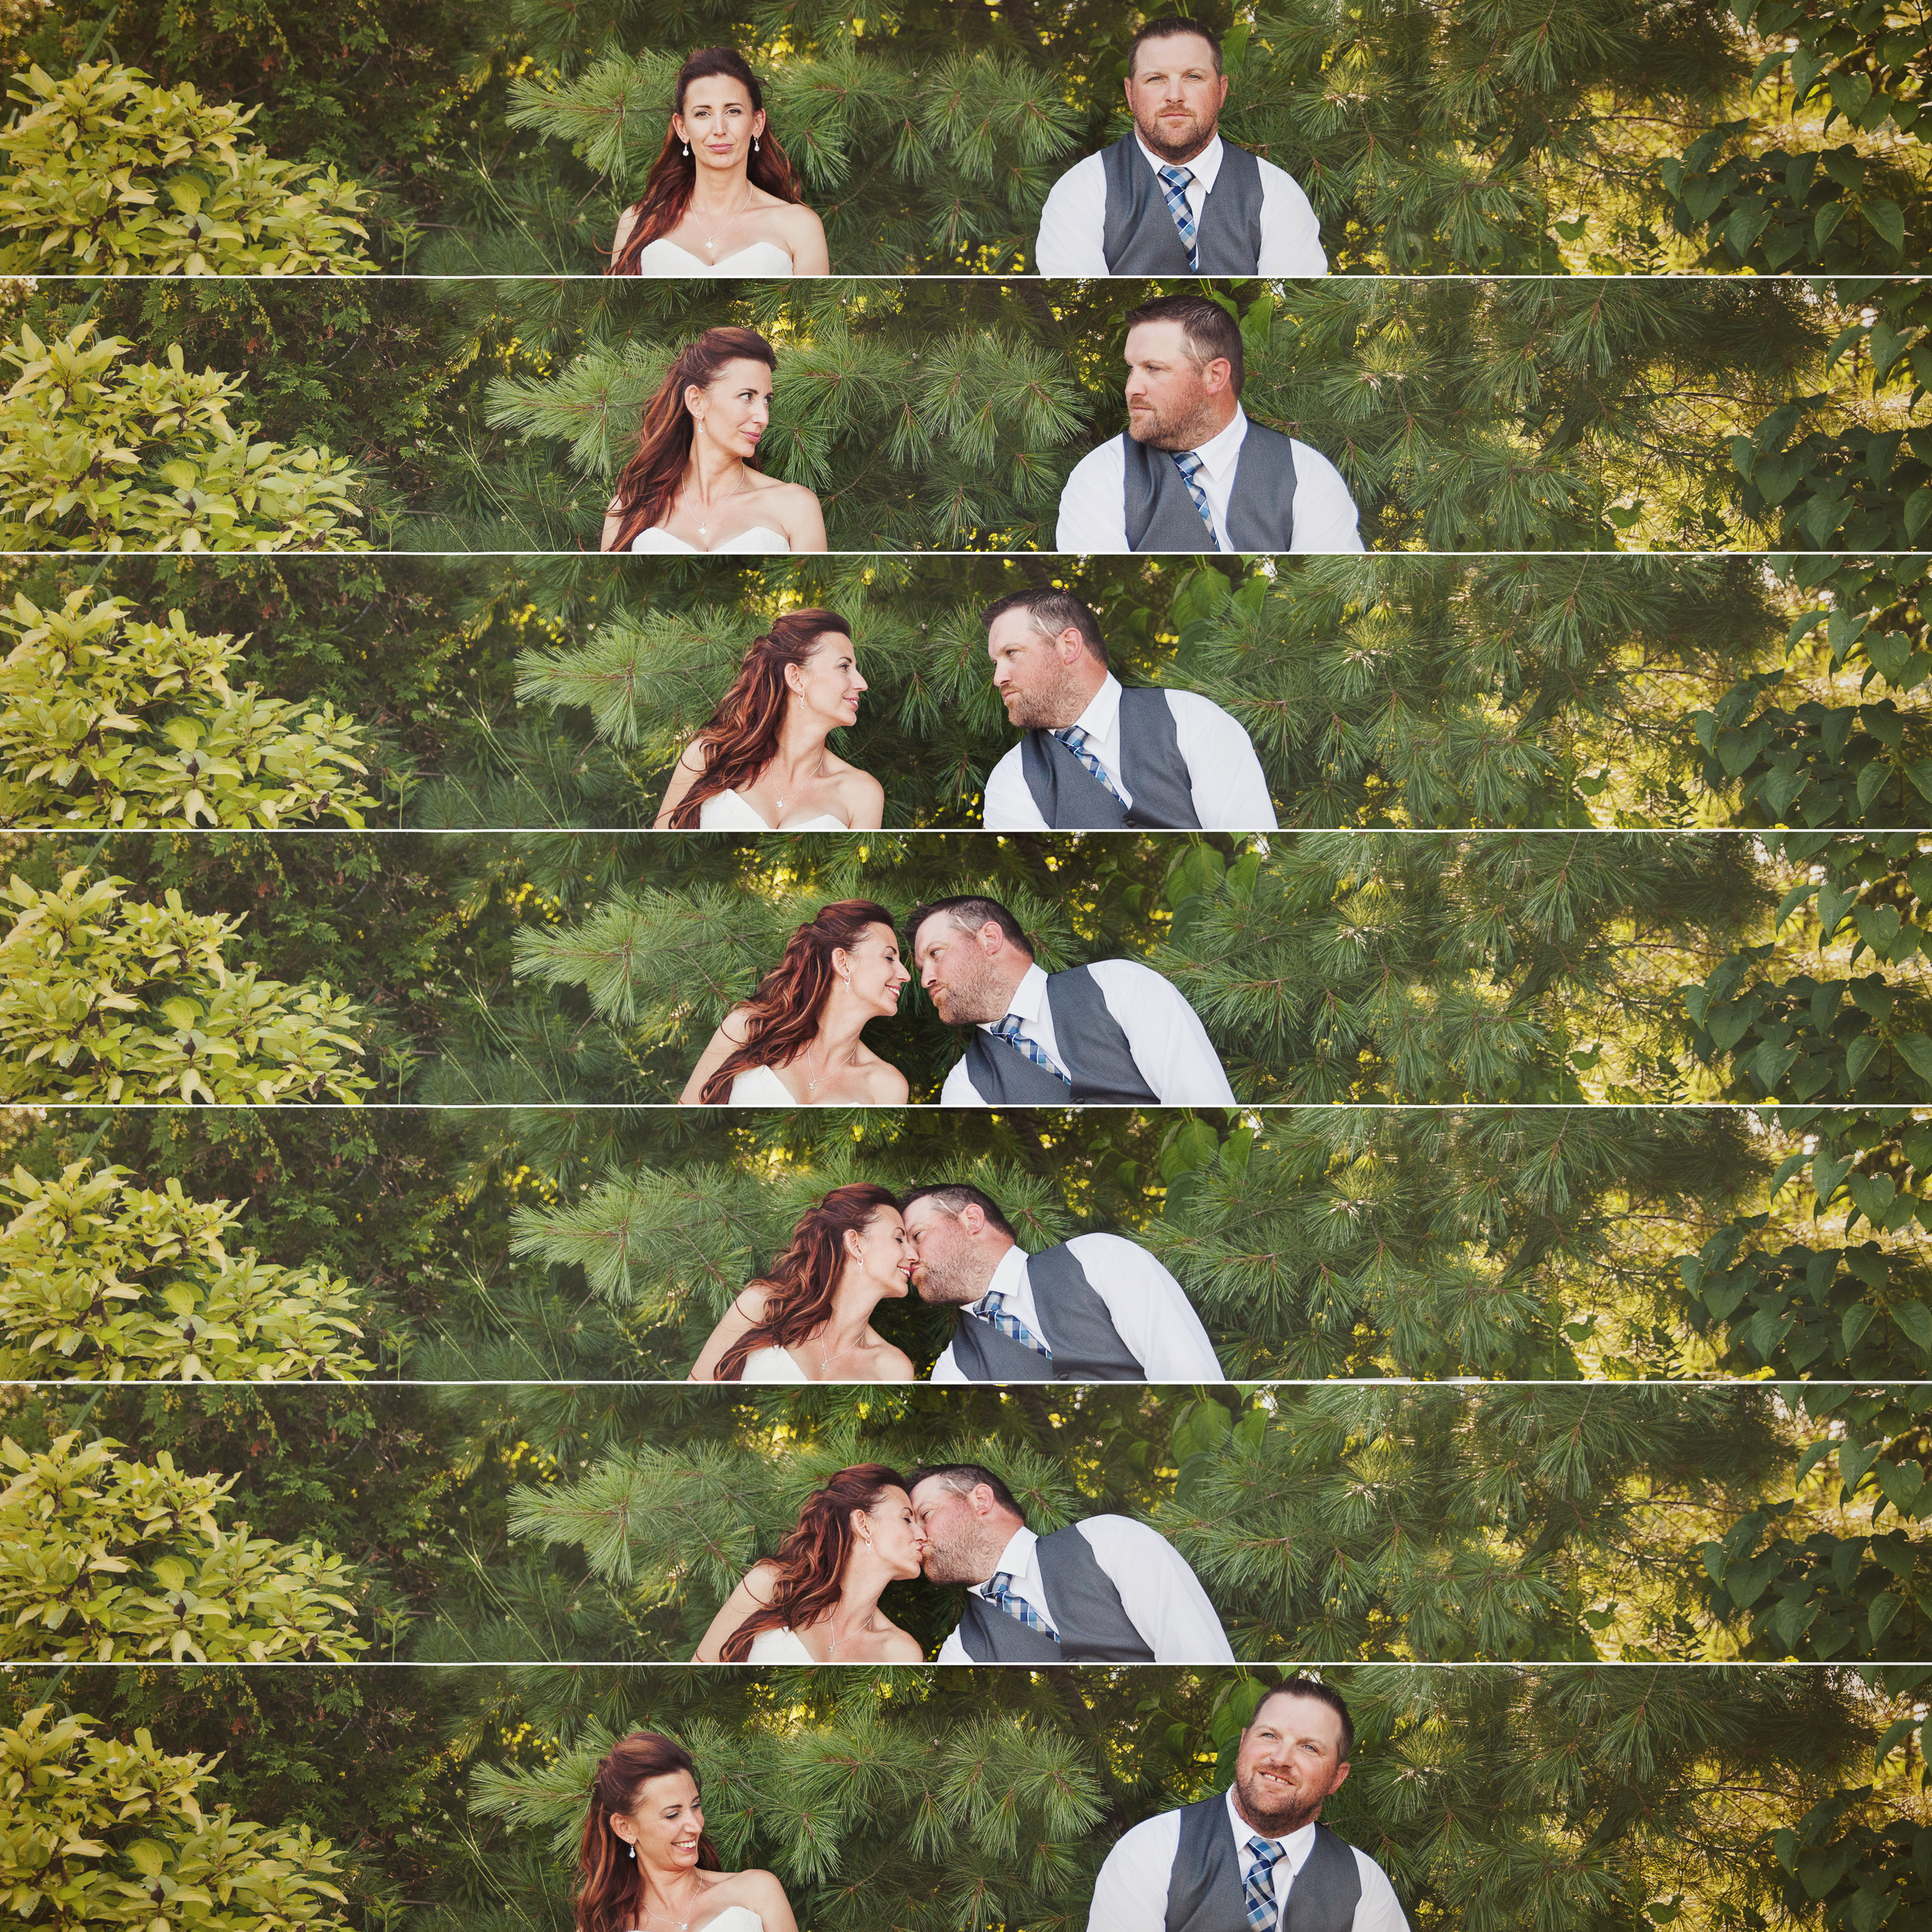 And then there's this. All the stages of a kiss! Stewart's face in the last pic makes my day!